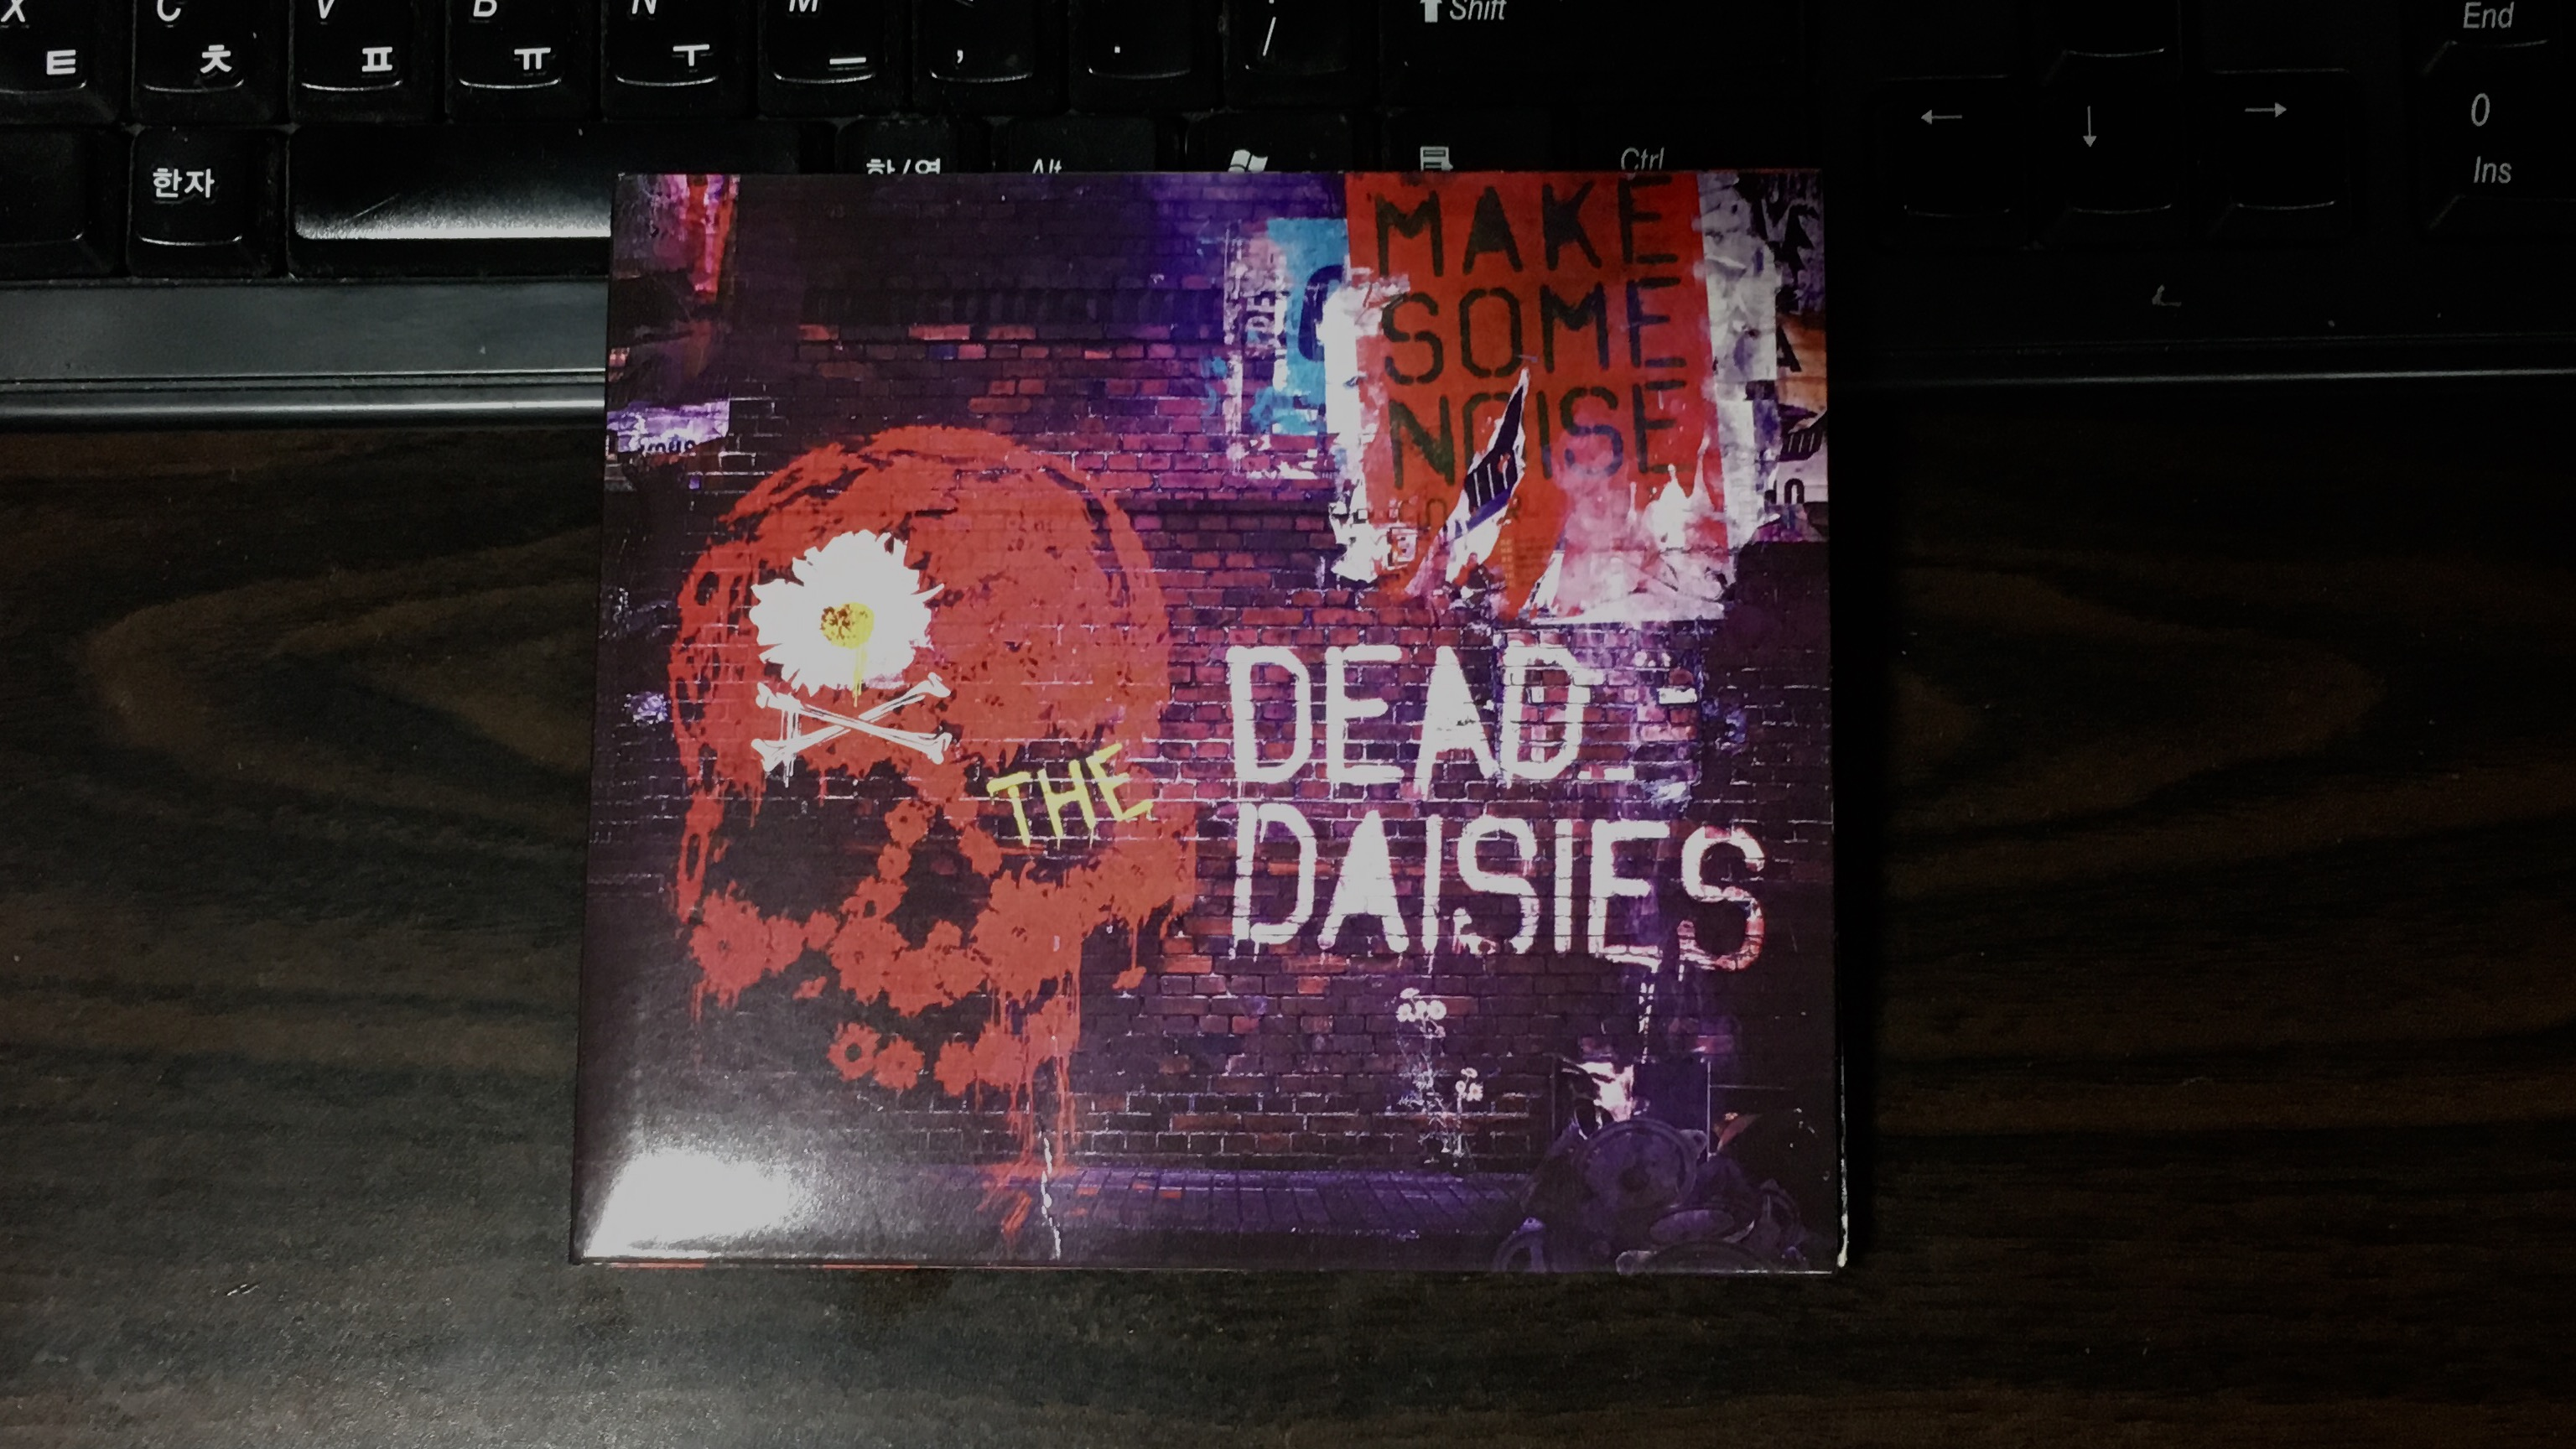 Make Some Noise - The Dead Daisies / 2016